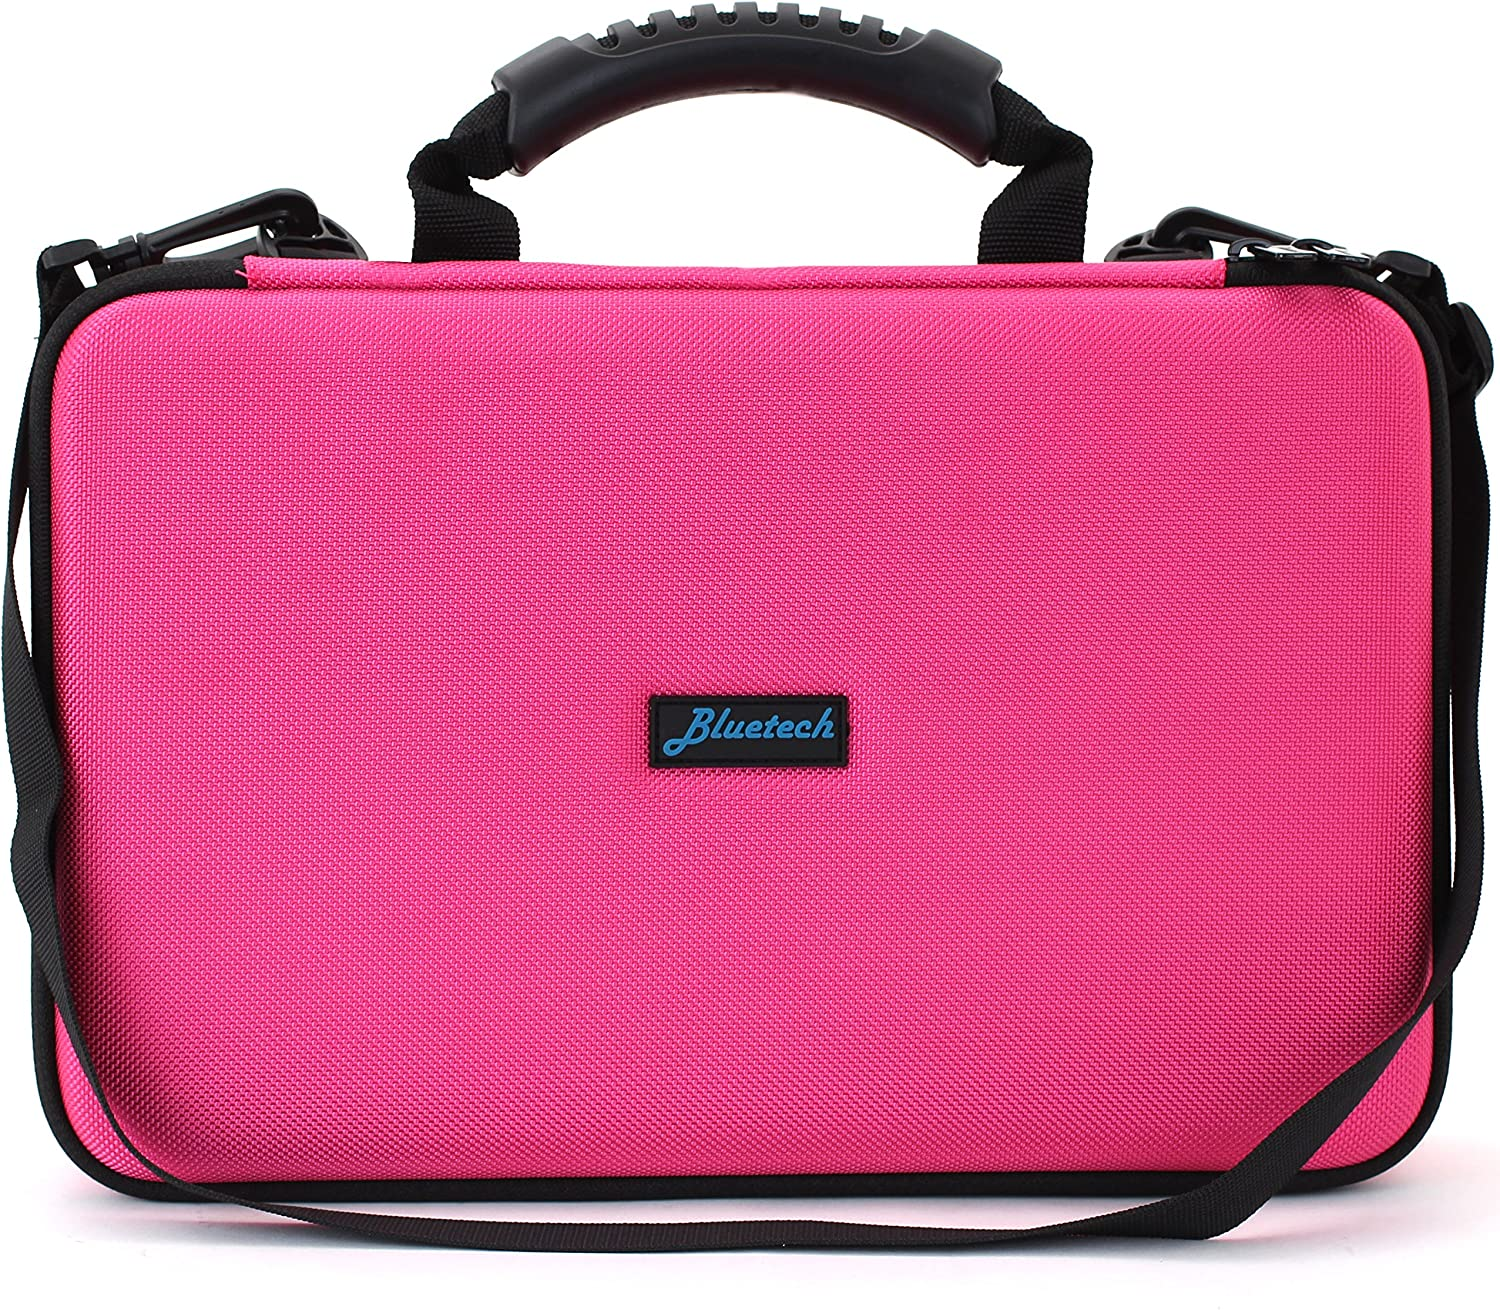 Pink Hard Storage Case for Cards Against Humanity Card Game with Removable Shoulder Strap B4-CARDCASEPNK Bluetech Extra Large